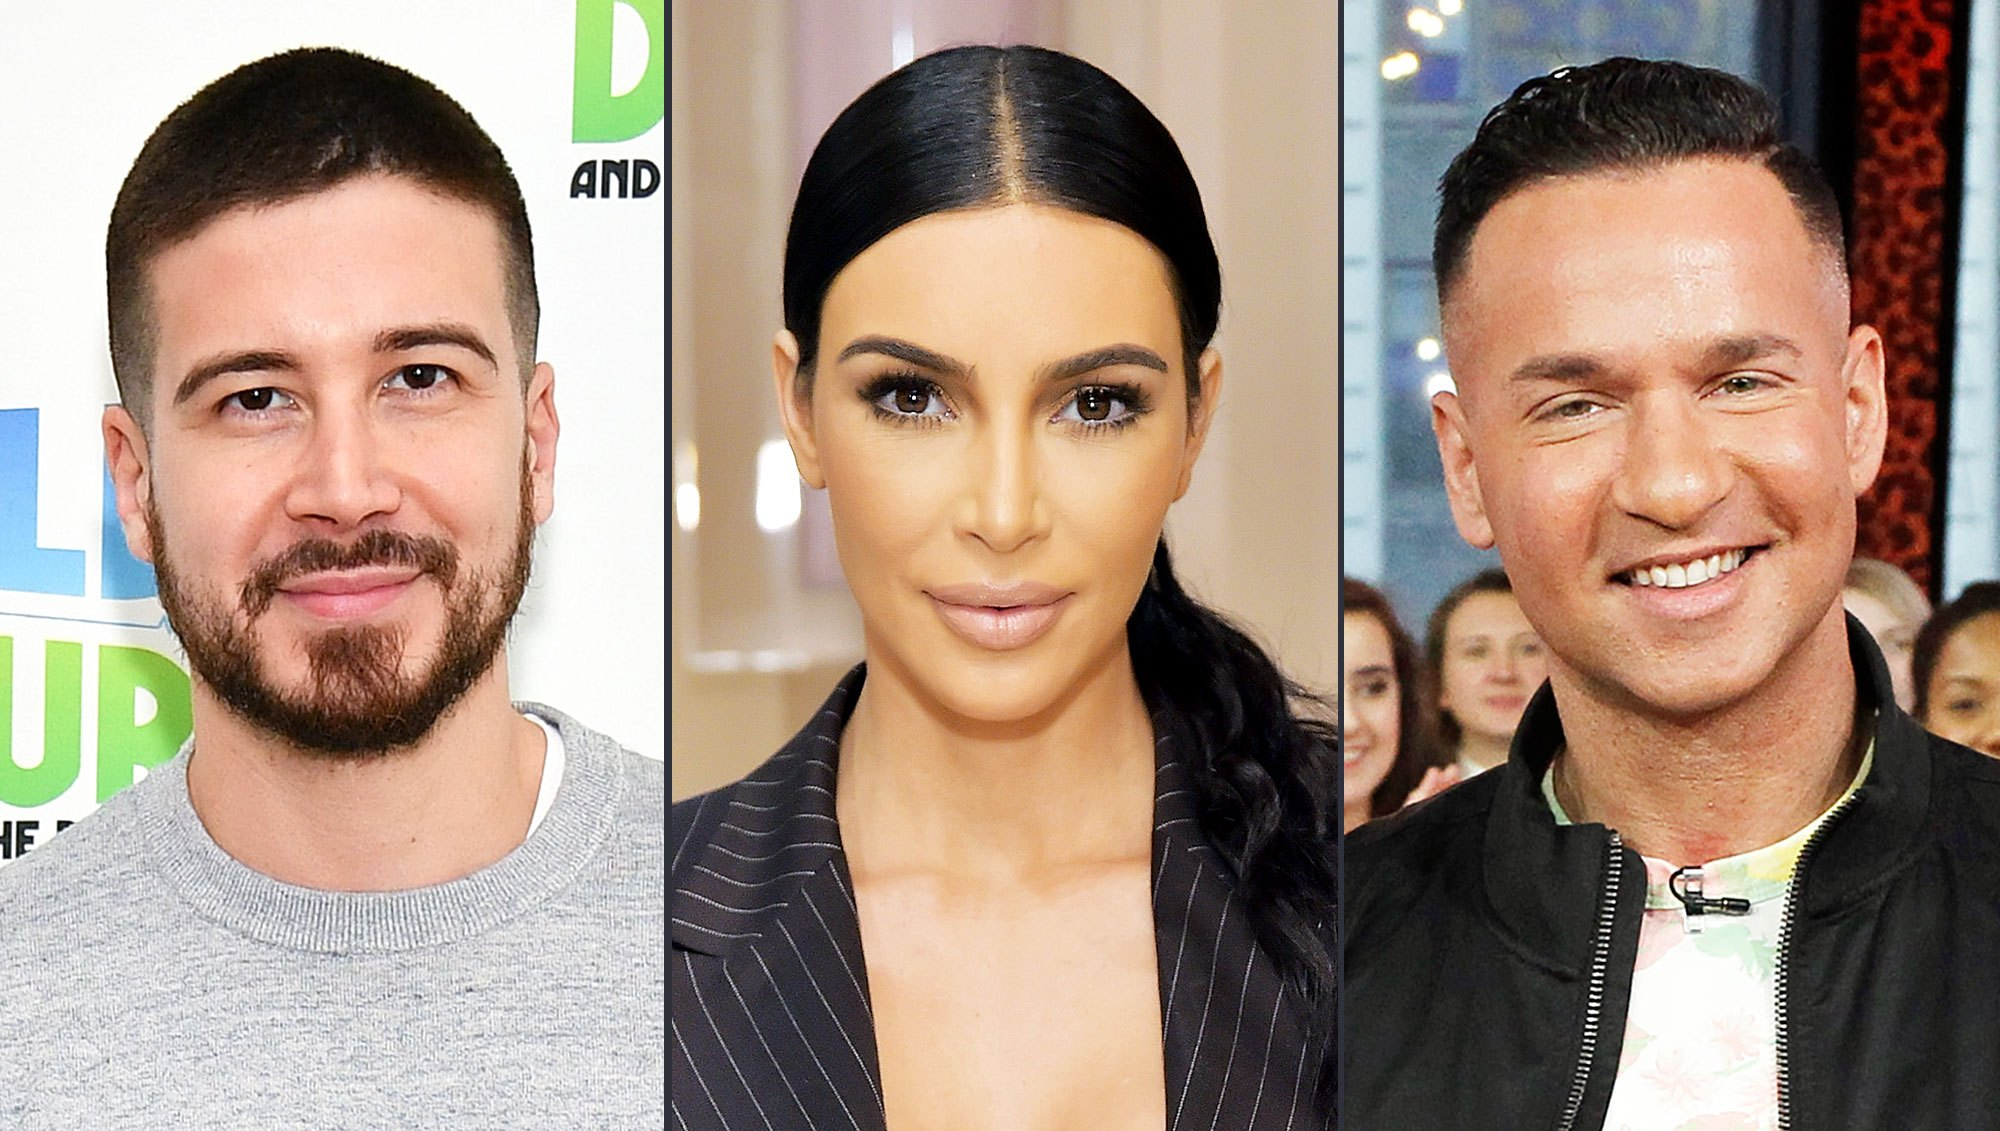 Vinny Guadagnino Asks Kim Kardashian Free The Situation Prison